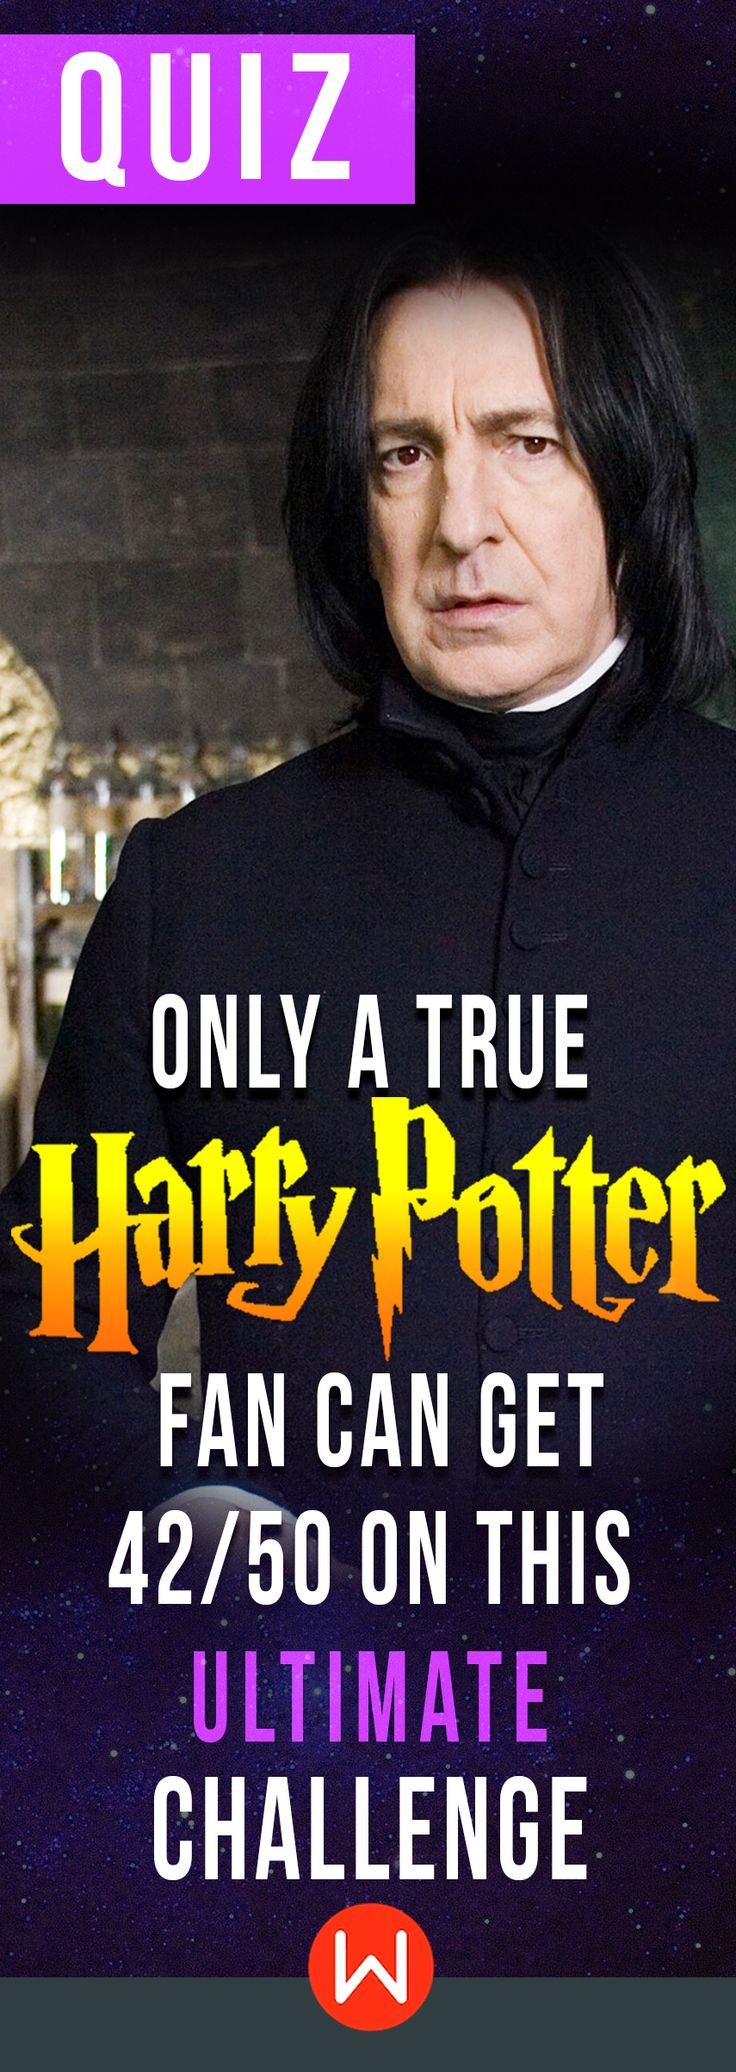 Can you Alohomora and ace this quiz? HP trivia quiz. Many people like Harry Potter, but do you really KNOW Harry Potter? Only an authentic Potterhead can get 42/50 right on this Harry Potter test. Can you? Professor Snape is looking at you! HP challenge. JK Rowling ultimate quiz.